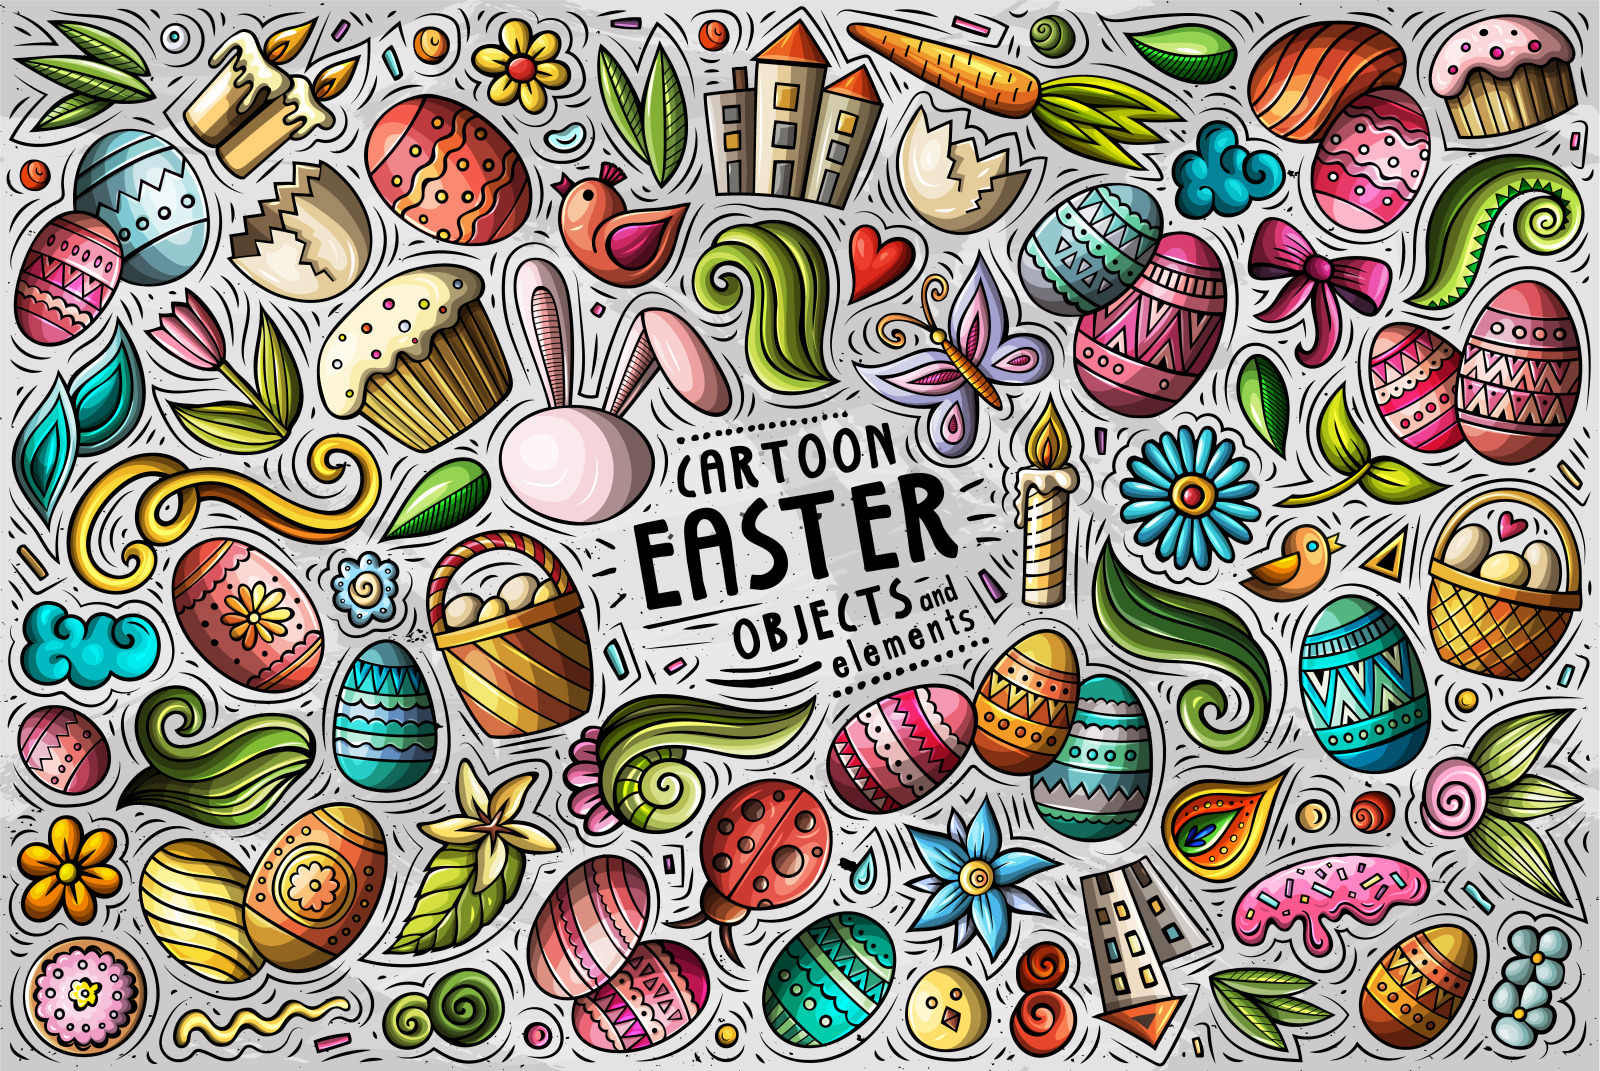 HAPPY EASTER Cartoon Vector Objects Set